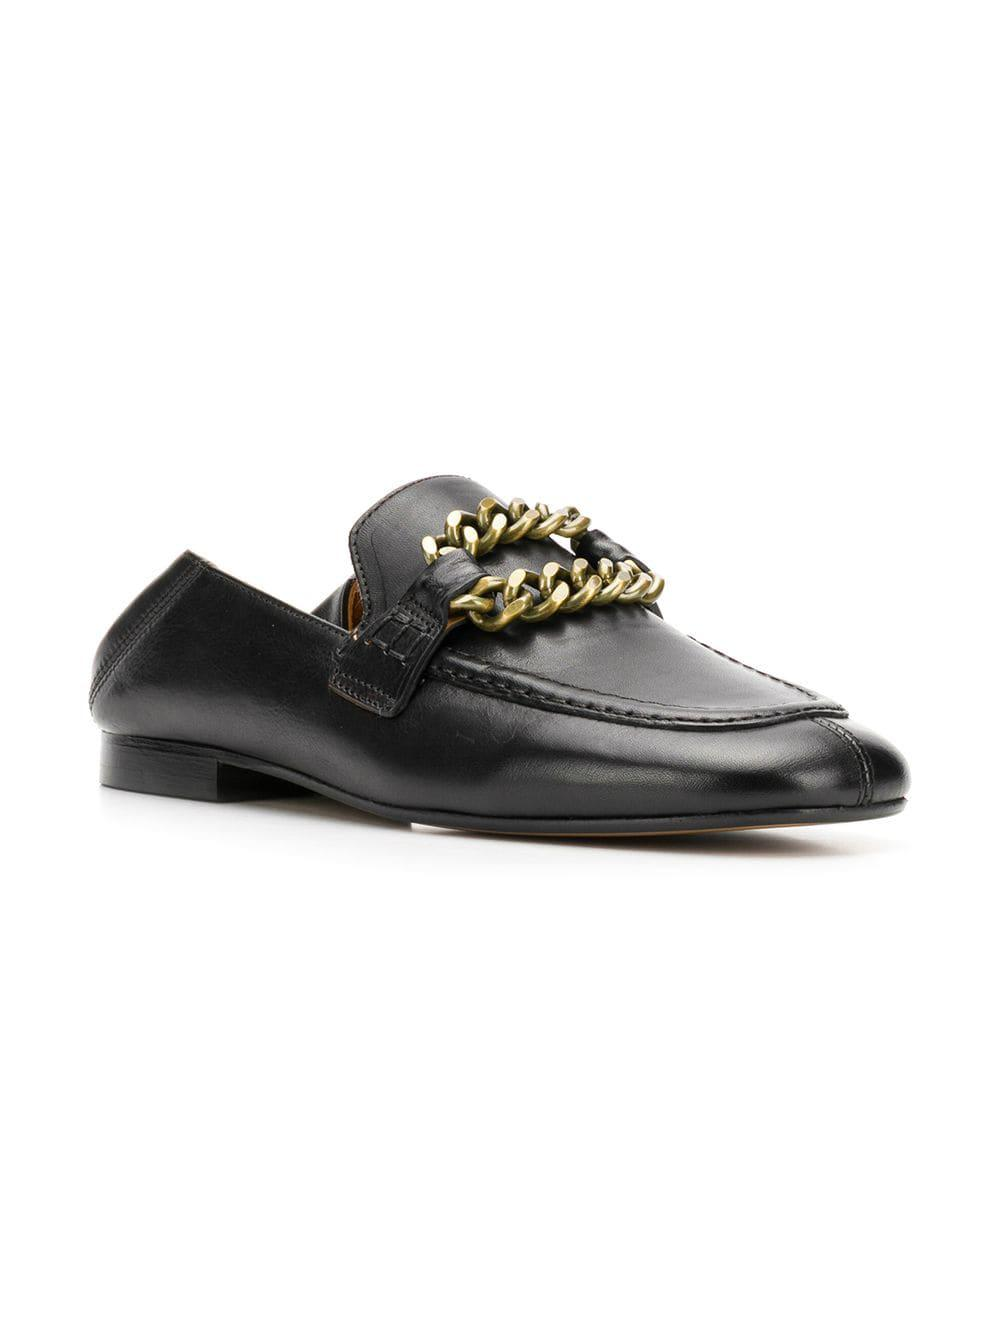 446dfecc61f Lyst - Isabel Marant Firlee Loafers in Black